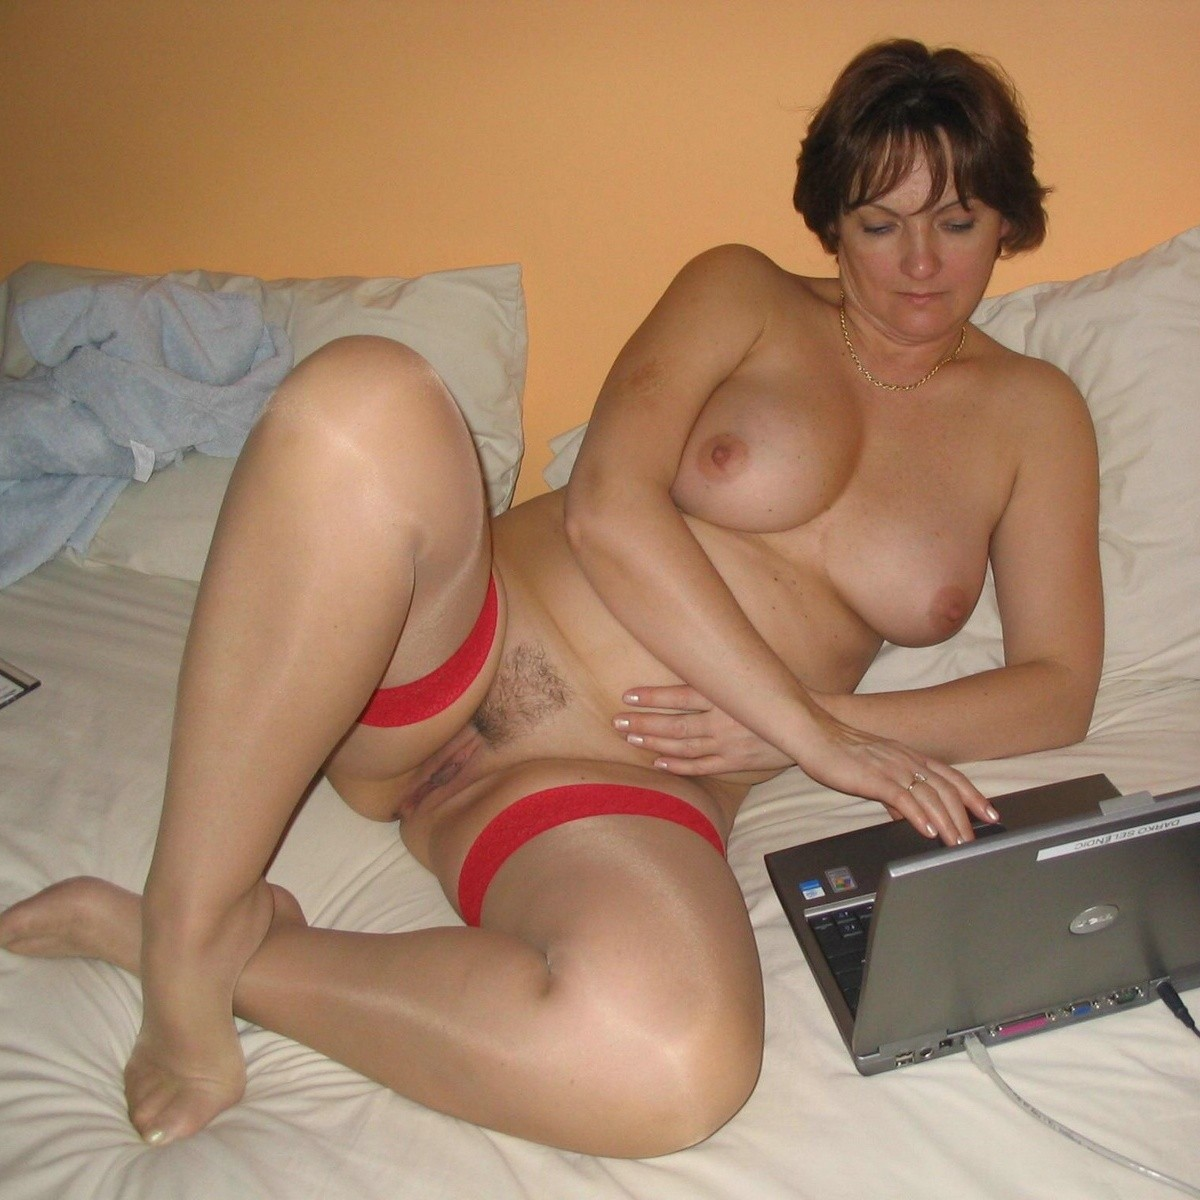 Free mature amateur black wife videos opinion